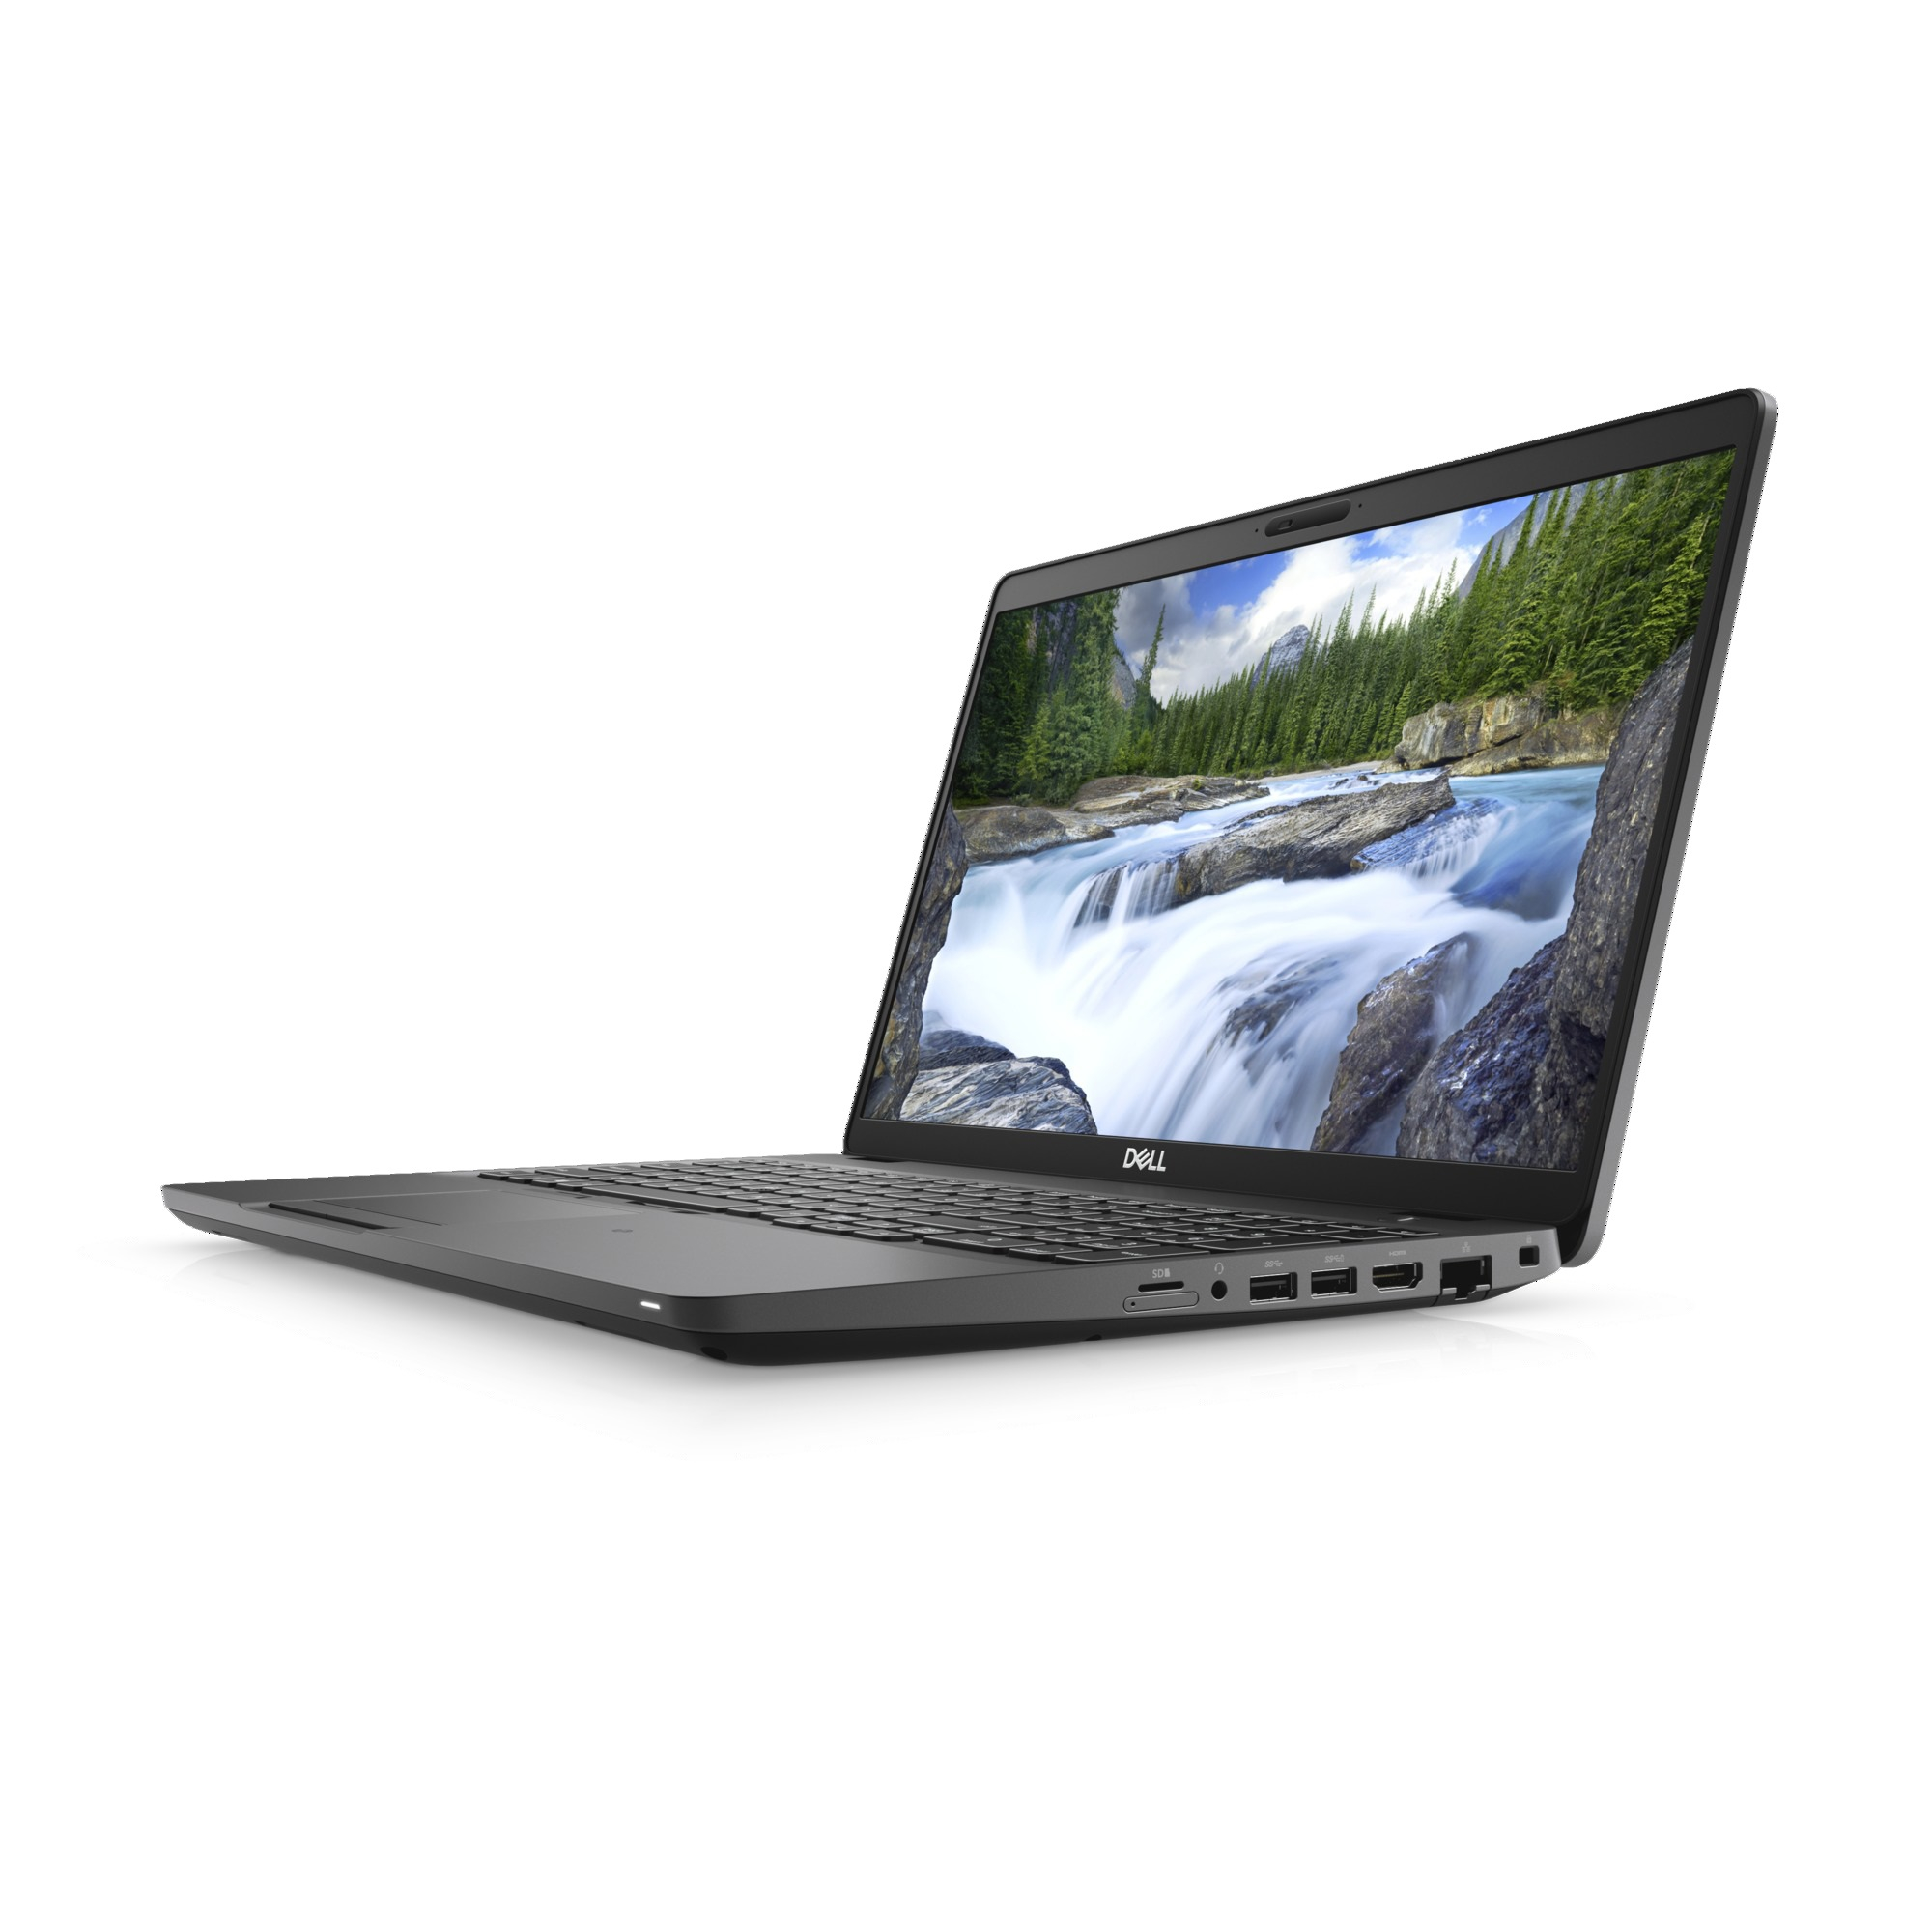 Laptop DELL Latitude 5501 15,6 i7-9850H 16GB 512GB SSD MX150 W10P 3YBWOS